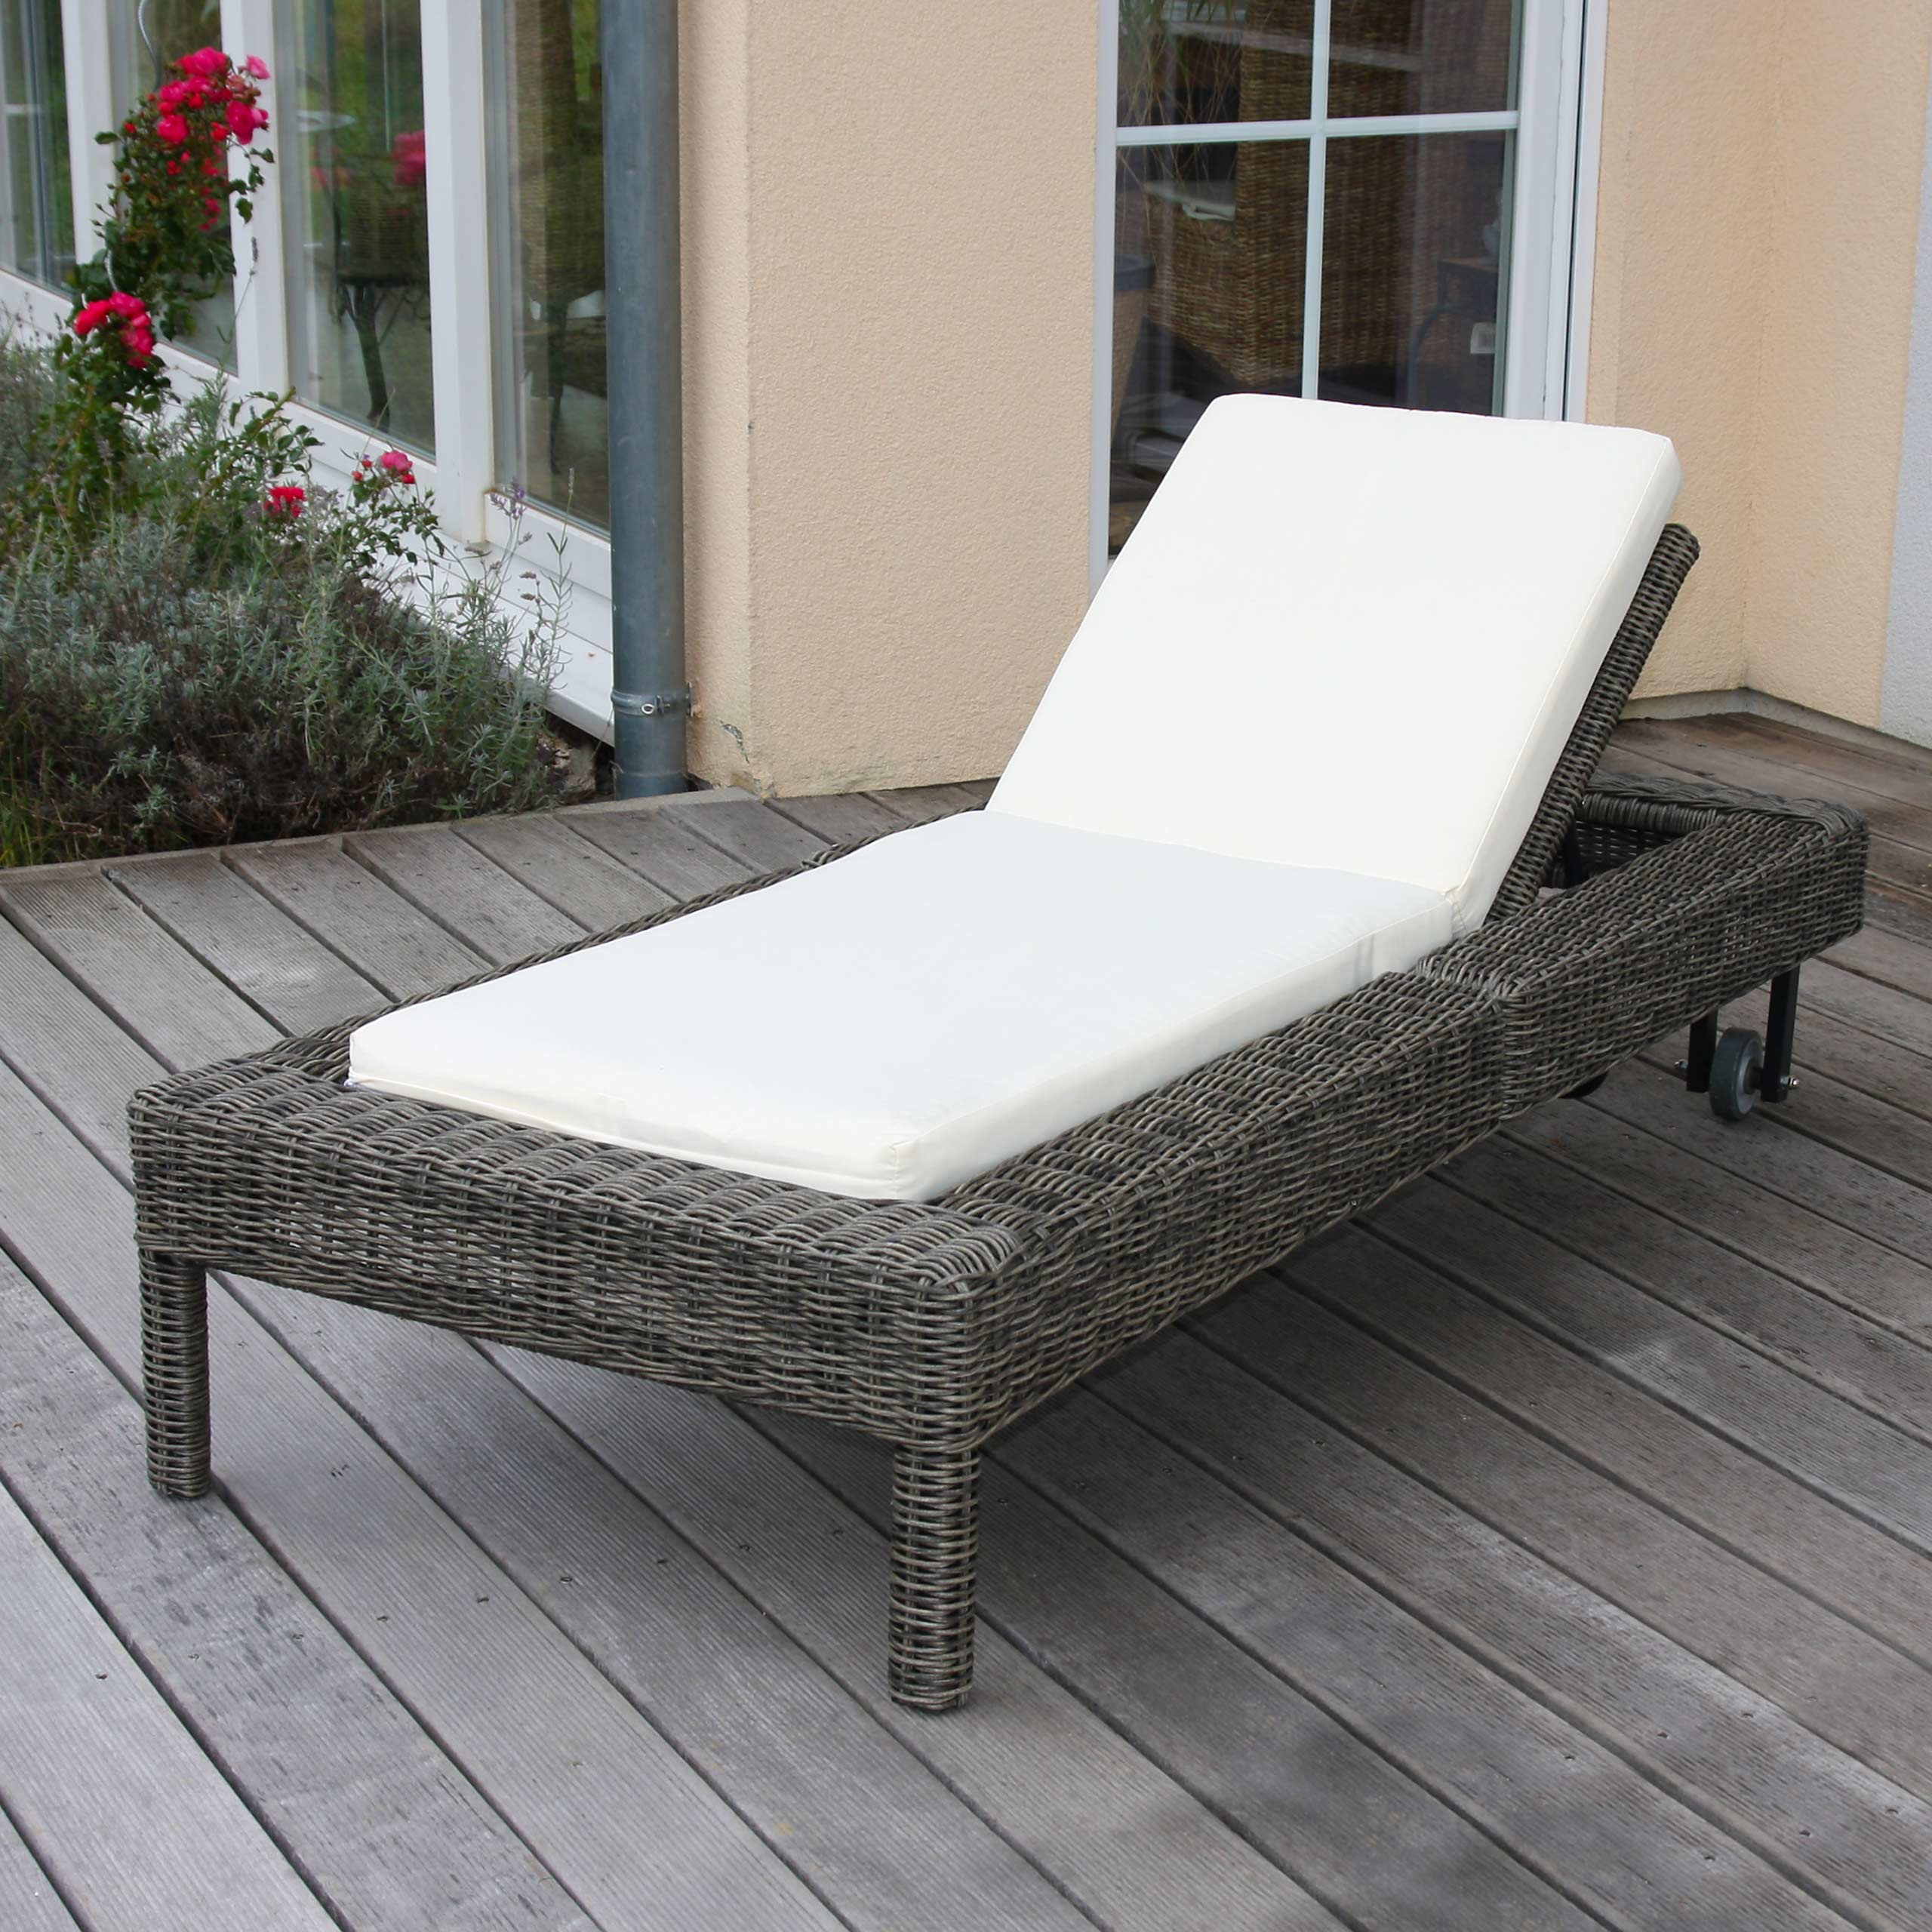 luxus sonnenliege gartenliege liege romviii naturgrau rundes rattan ebay. Black Bedroom Furniture Sets. Home Design Ideas